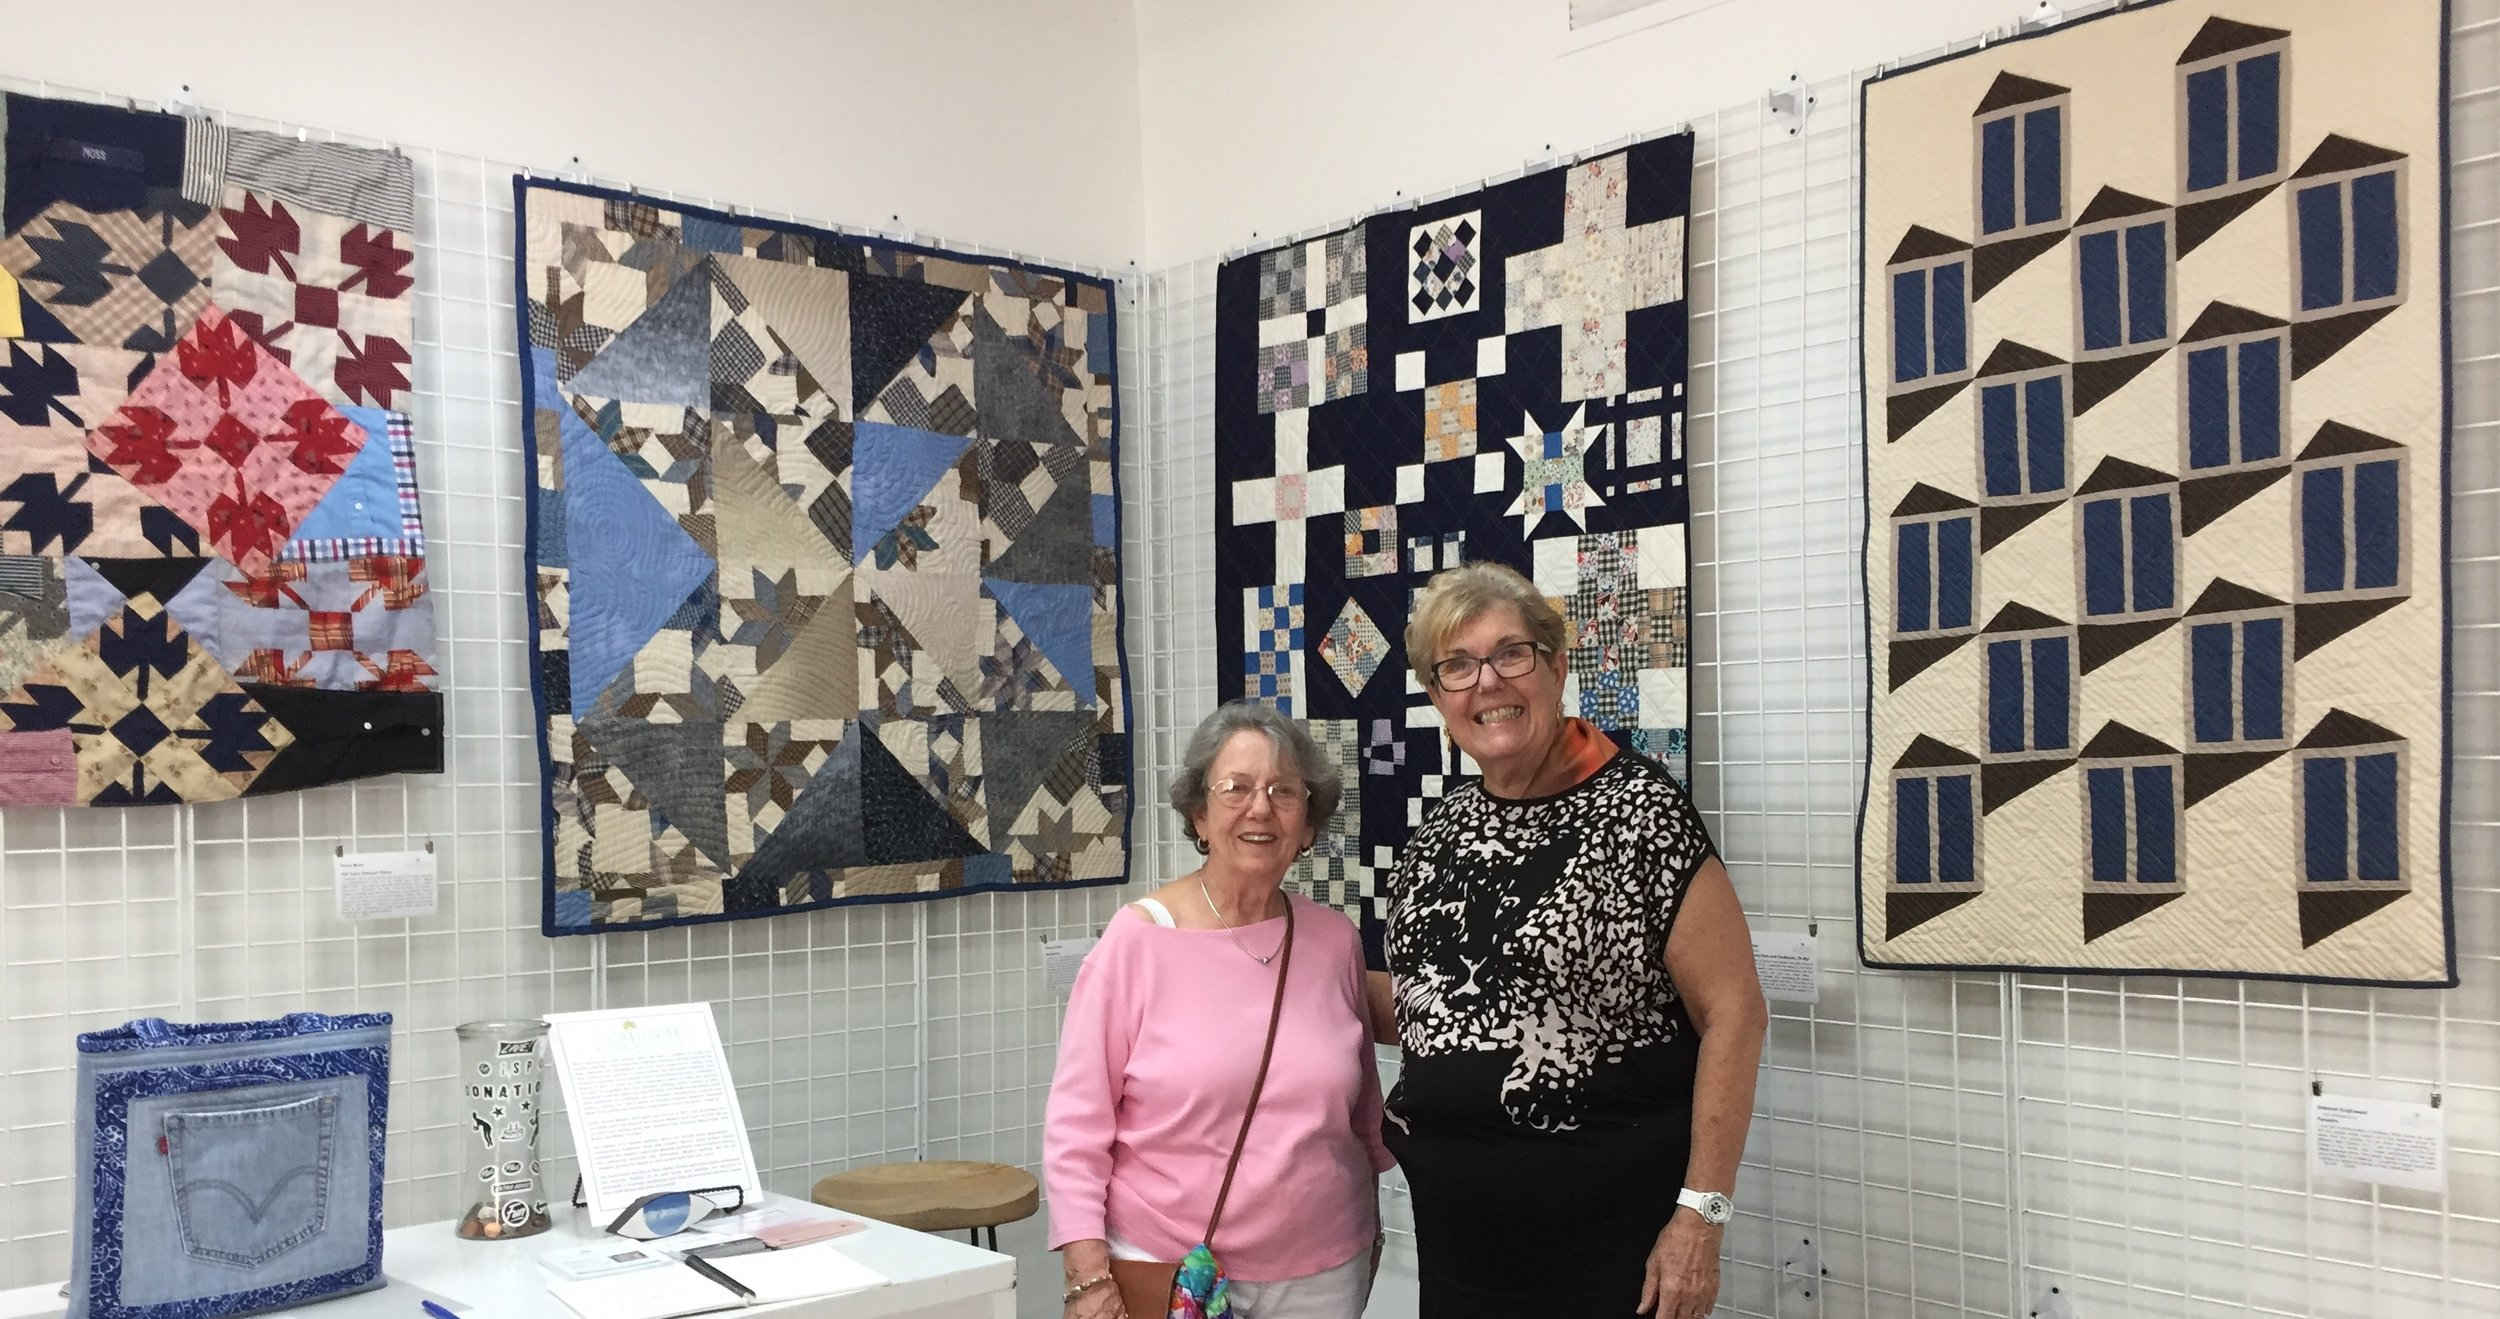 Artist Diane Moss (on right) and Guest   100 Years Between Shirts  by Diane Moss   Wondering  by Patricia Auten   Nine Patch and Navy and Feedsacks, Oh My!  by Nicole Kaplan   Fenestra  by Deborah Krajkowski   Levi Pockets Tote  by Pam Chamberlin